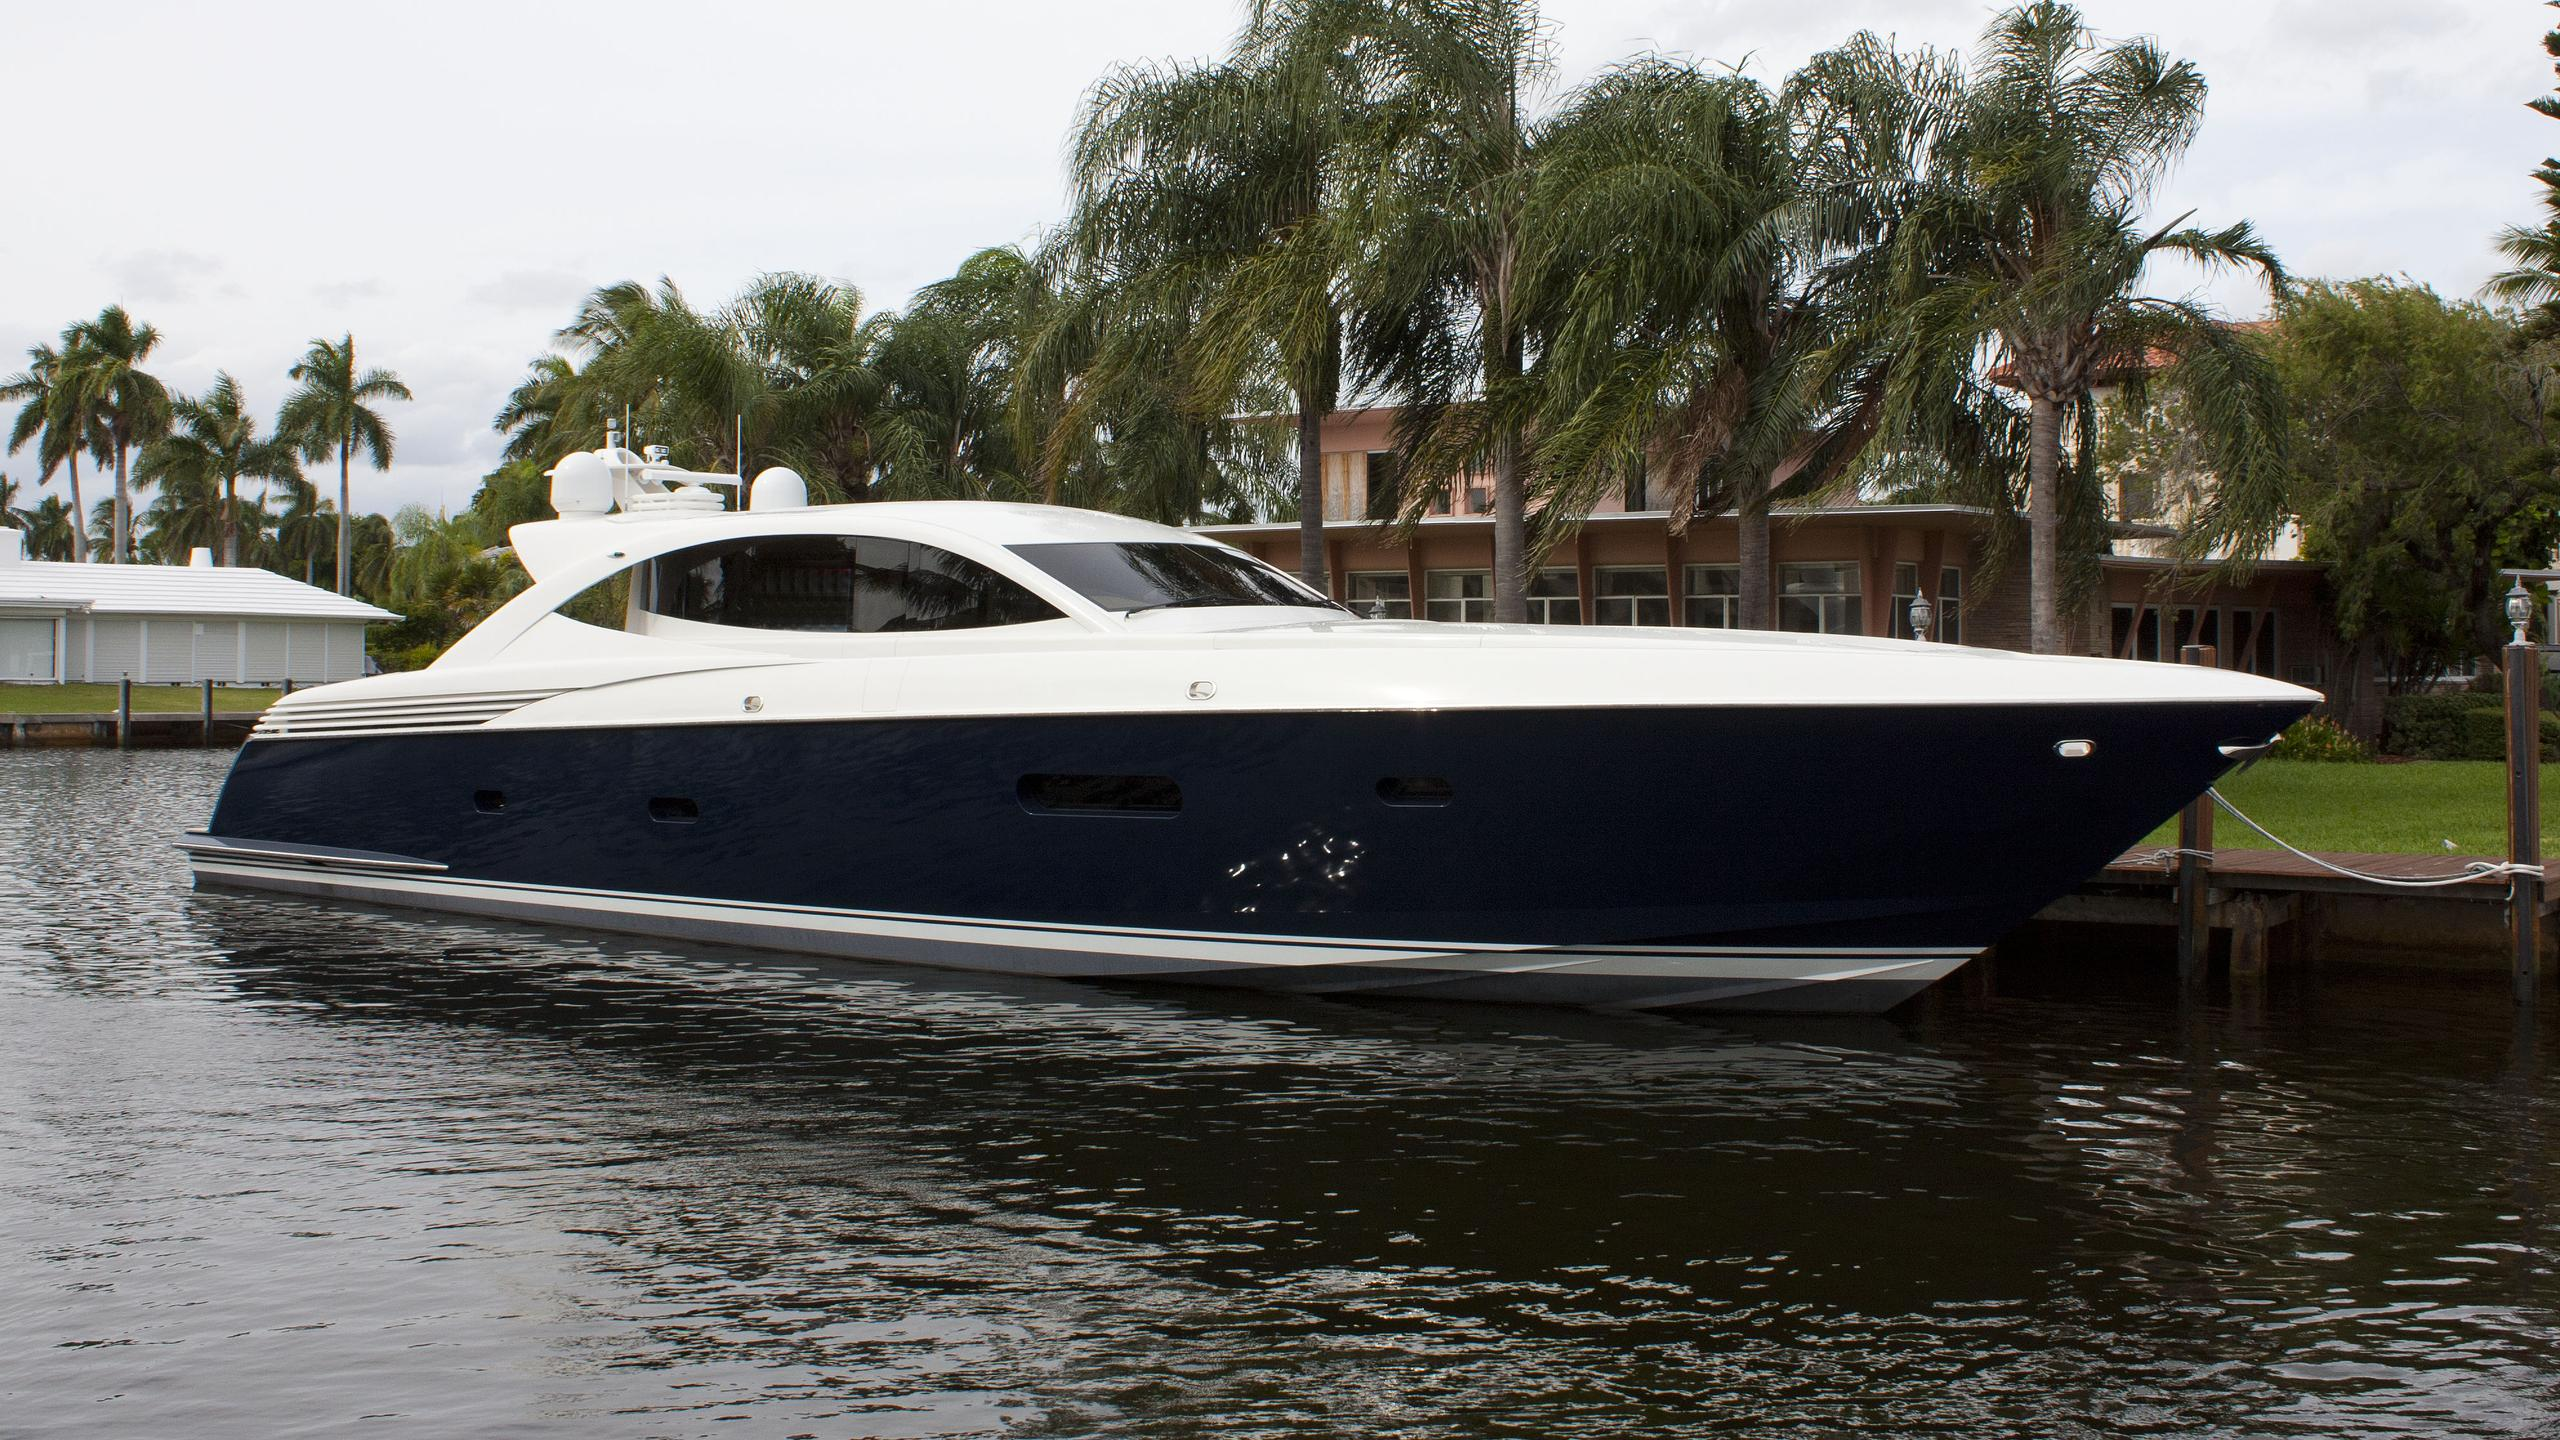 virginia sea elielle motoryacht mcmullen wing 2005 25m half profile